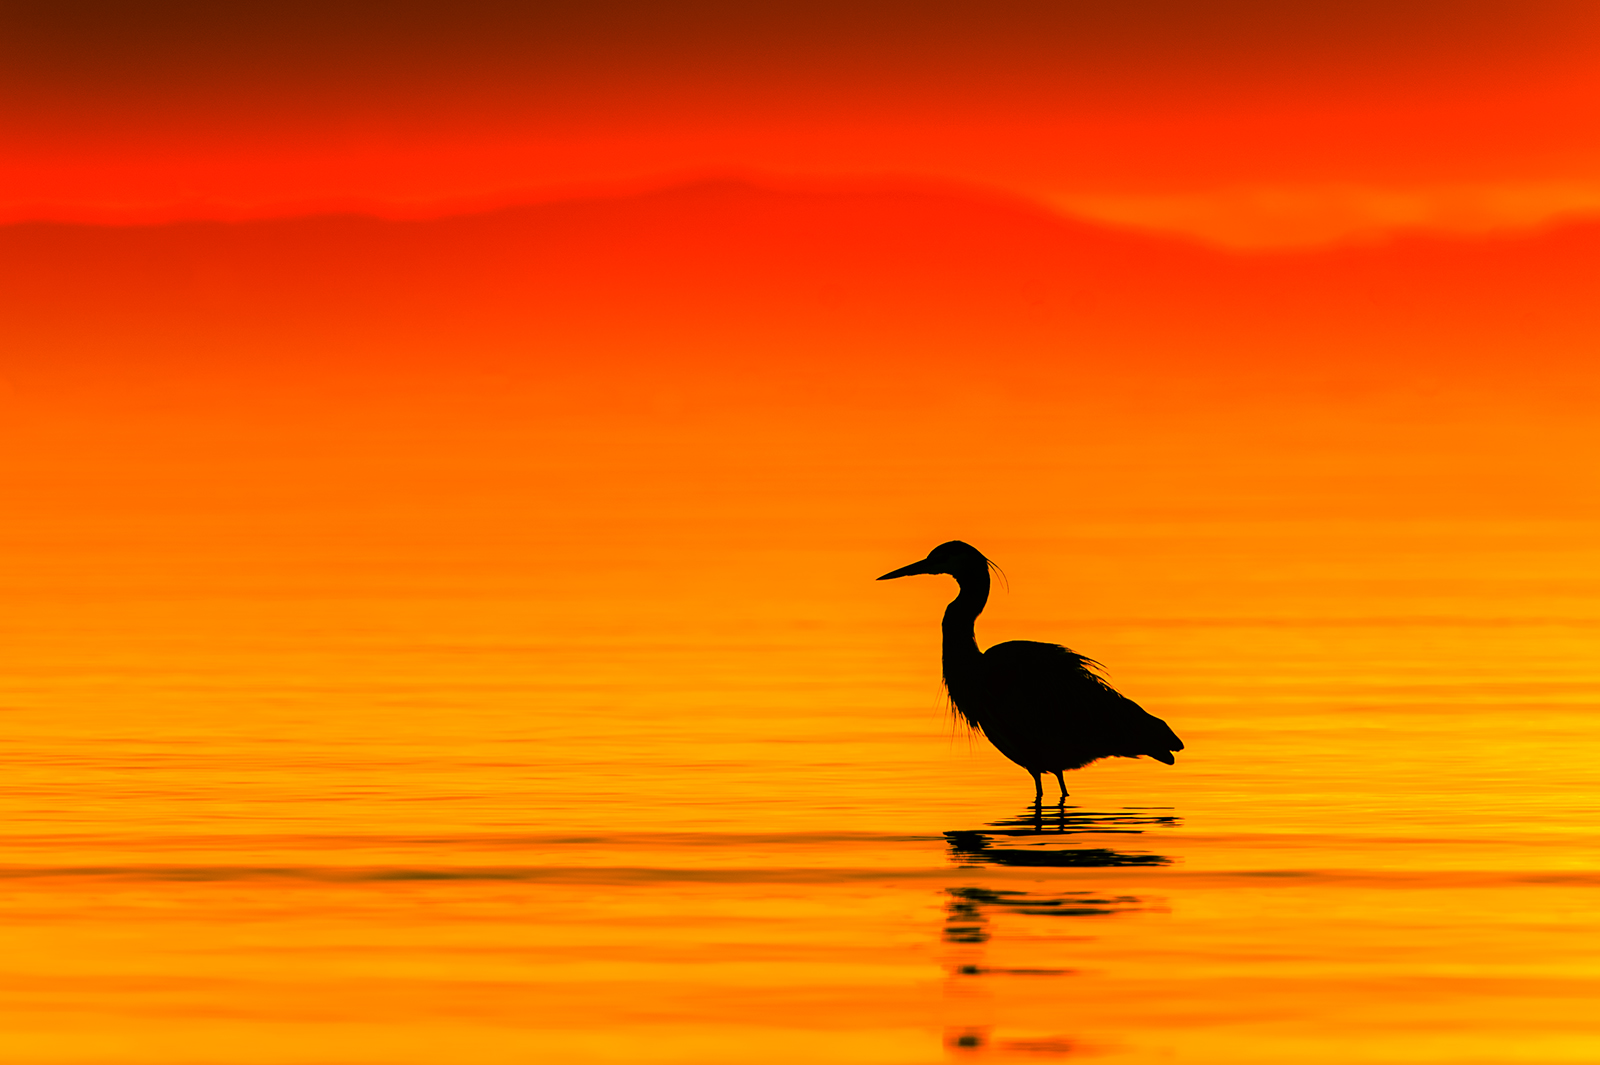 A wading heron is silhouetted by the vibrant orange and red sunset